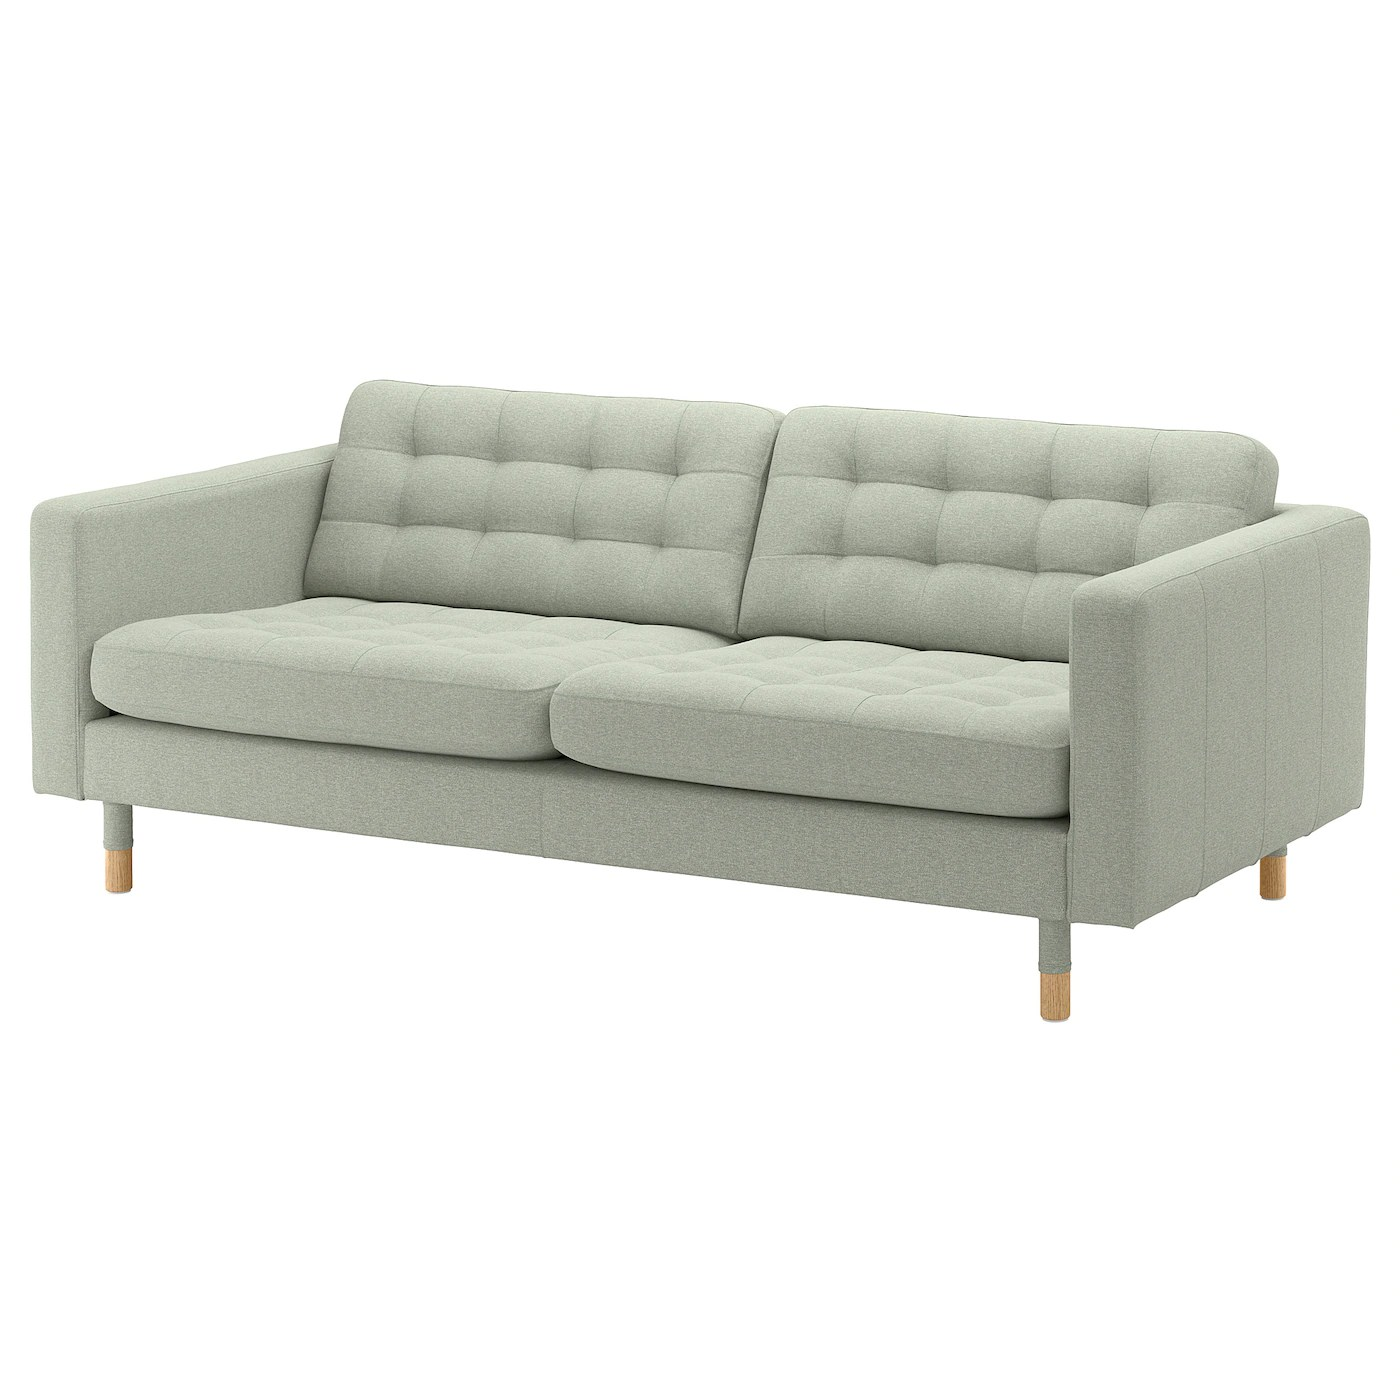 Sofa Uk Ikea 3 Seater Sofa Ikea